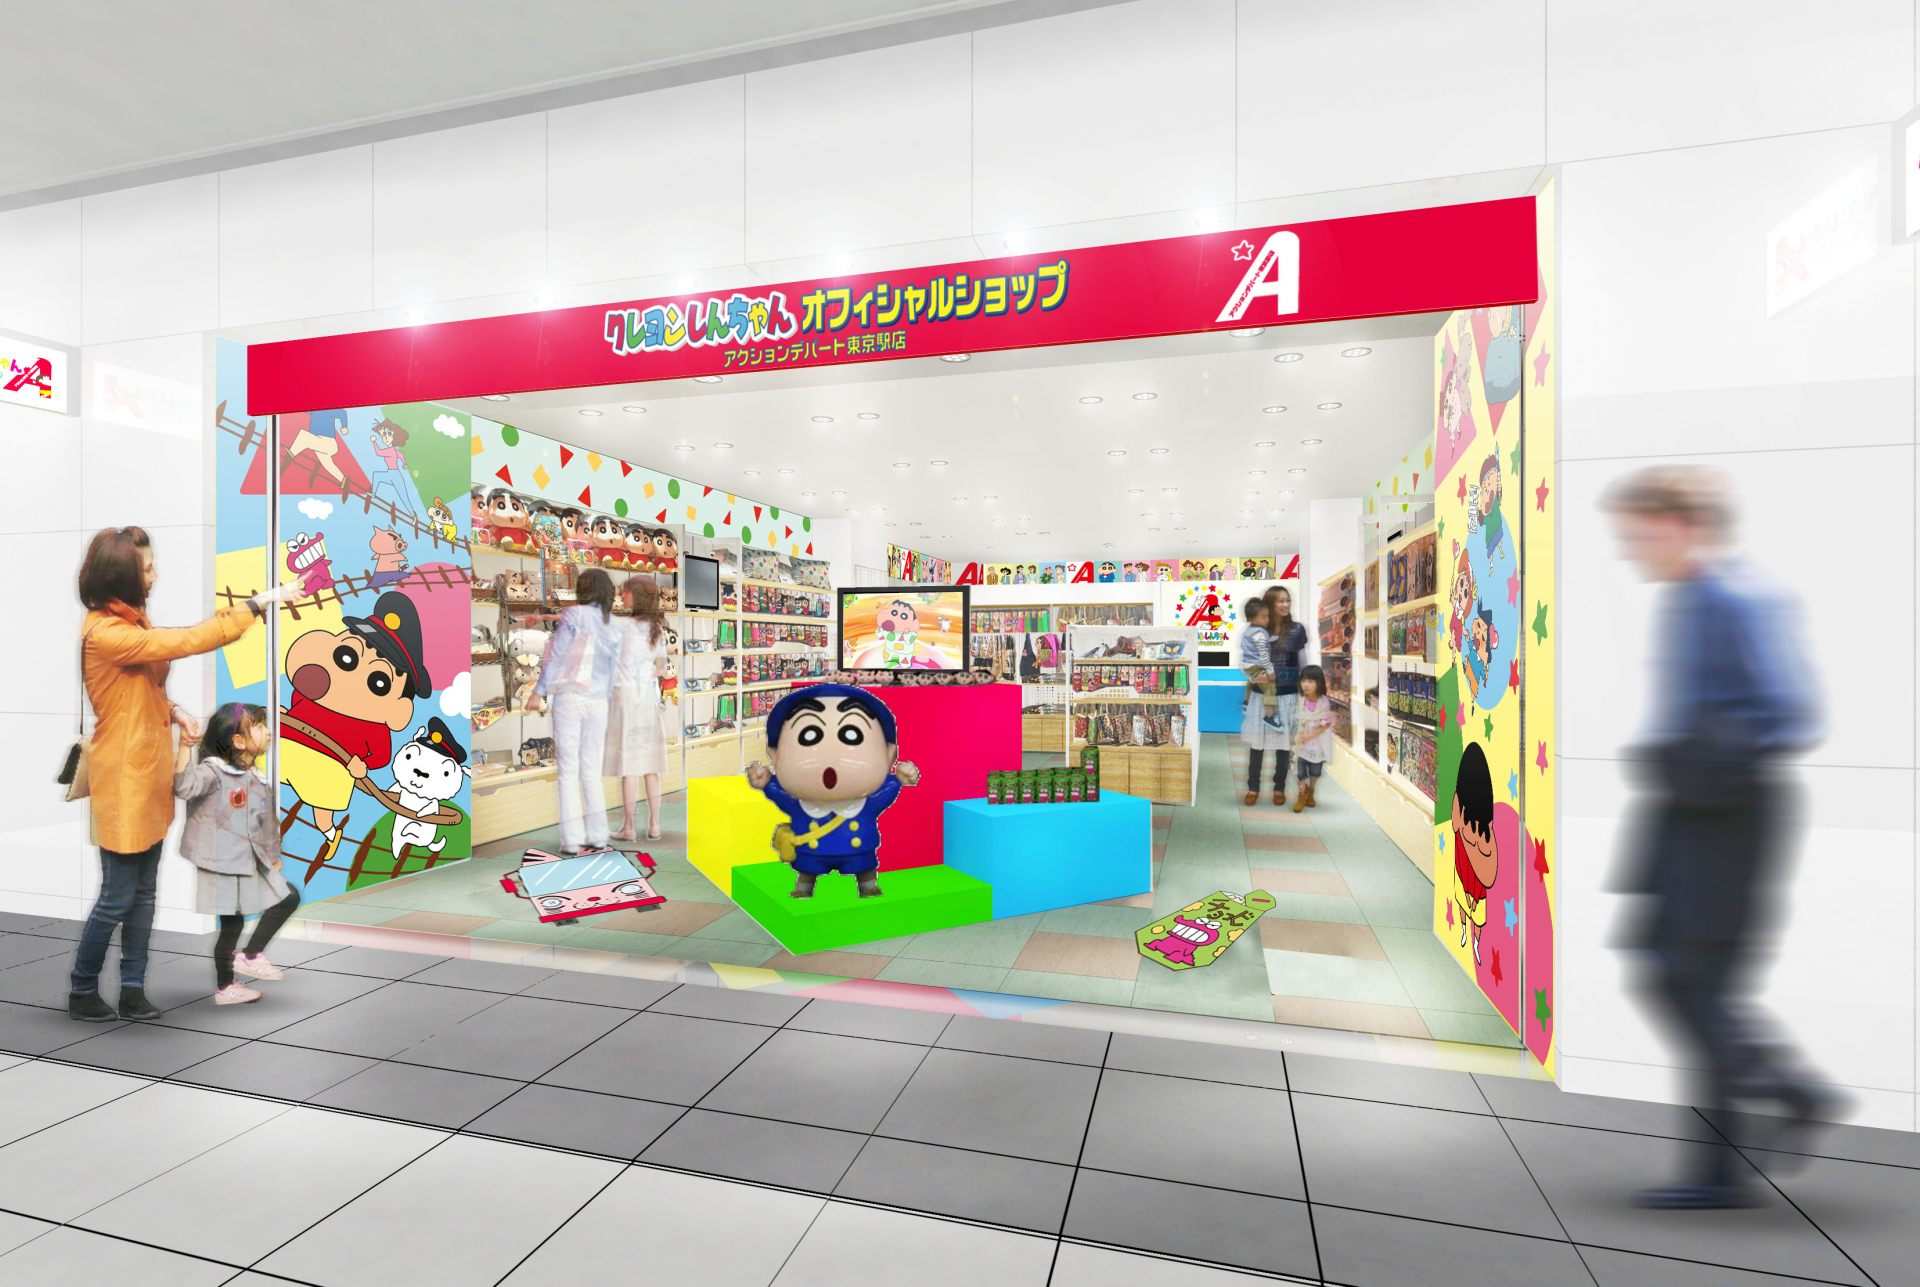 "In the series the Nohara Family regularly visits the ""Action Department Store"". This is a store based on that department store from the series."